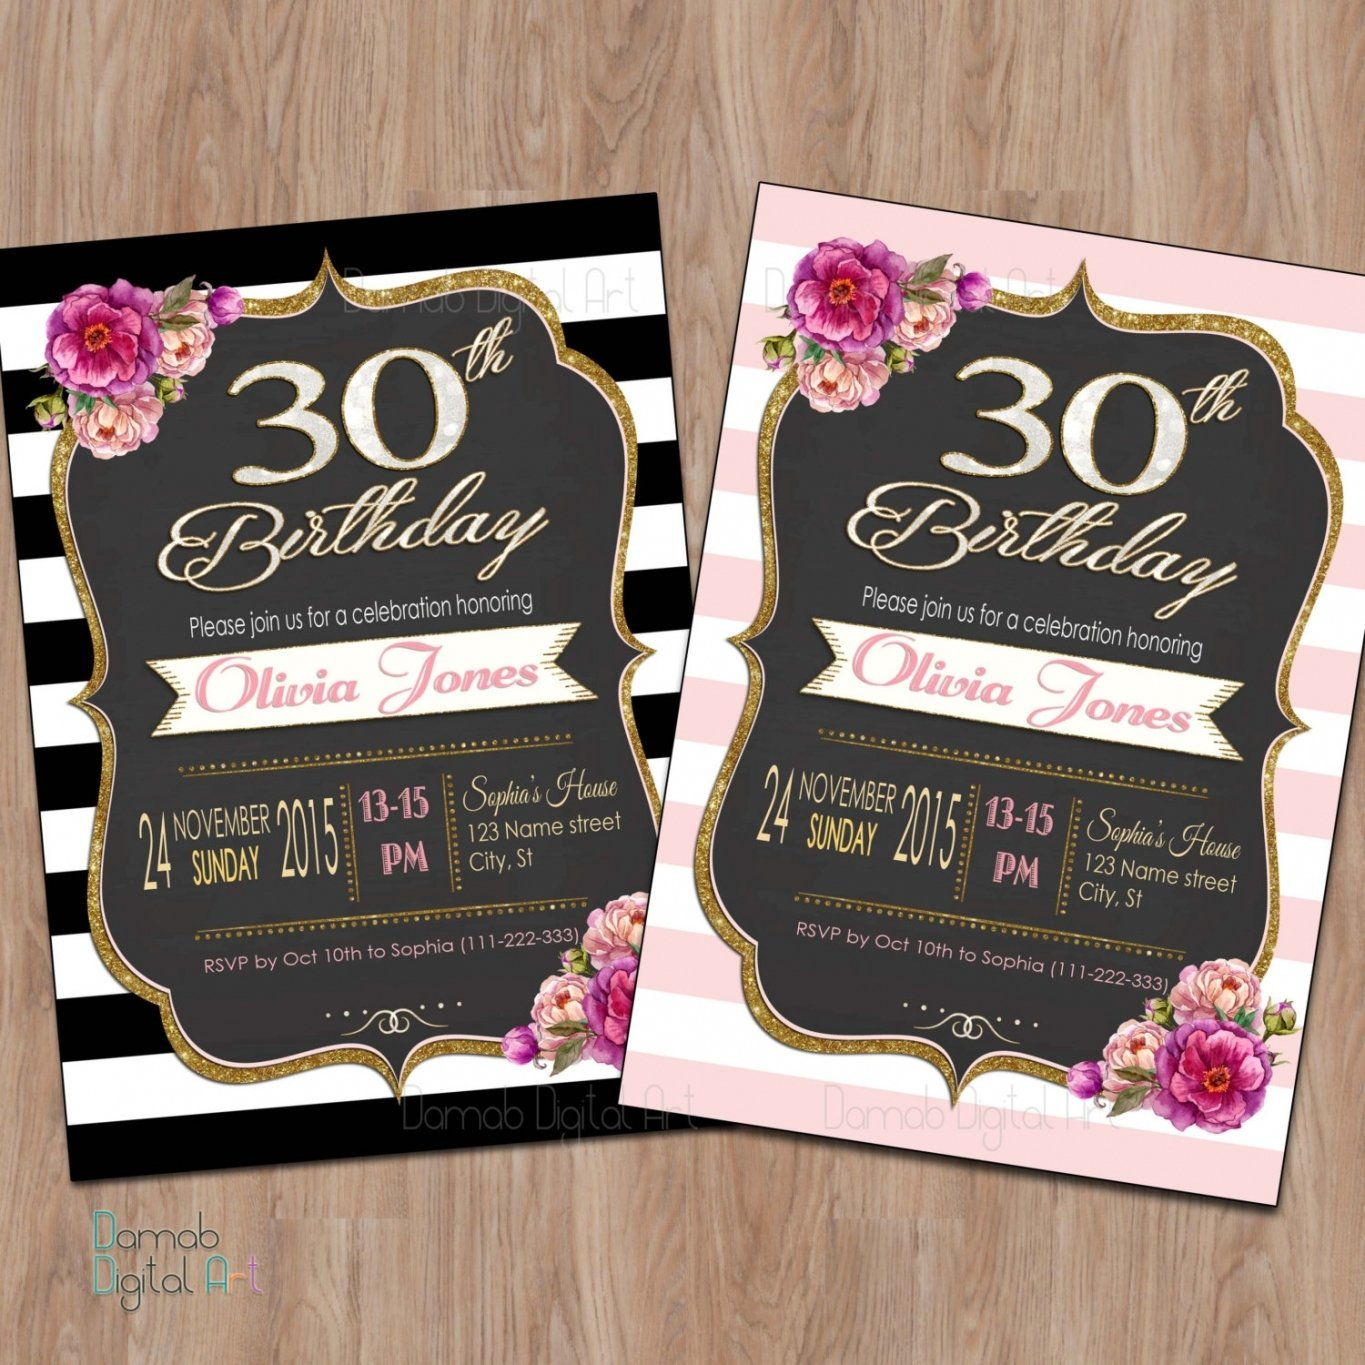 10 Wonderful 30Th Birthday Party Ideas For Her tips to create 30th birthday party invitations for her ideas 5 2020